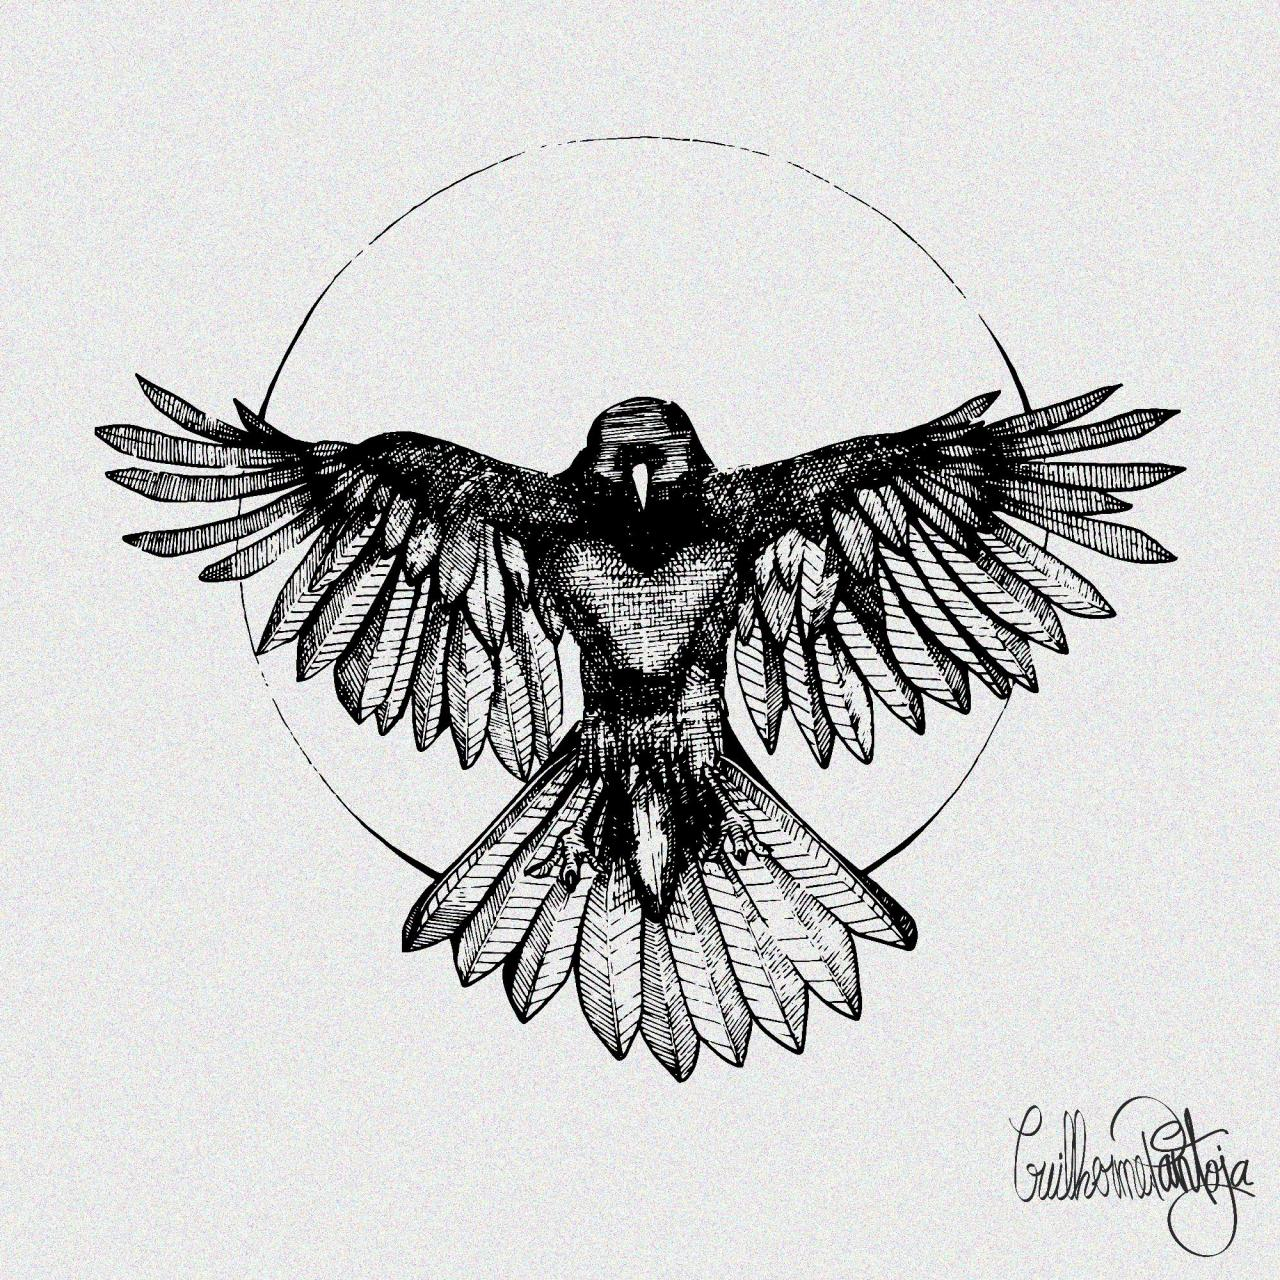 Raven i designed a while back. I do tattoo designs in dotwork and linework in nature themes. Let me help you with yours!